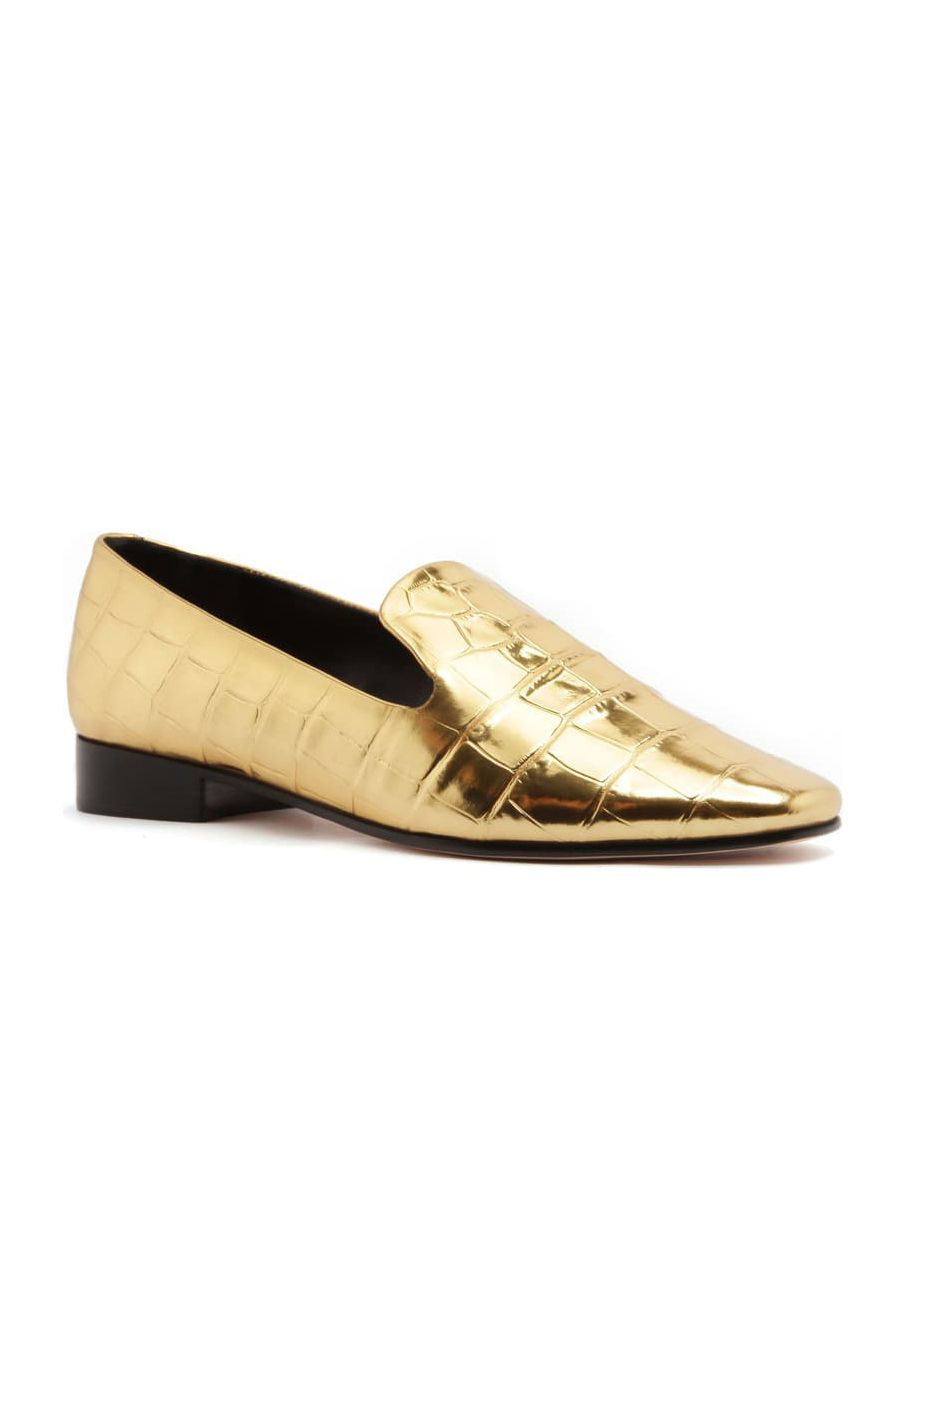 T-JULY Women Winter Shoes Fur Flats Fashion Moccasins Bootie Slip On Loafer Thick Warm Cool Gold Metal Footwear